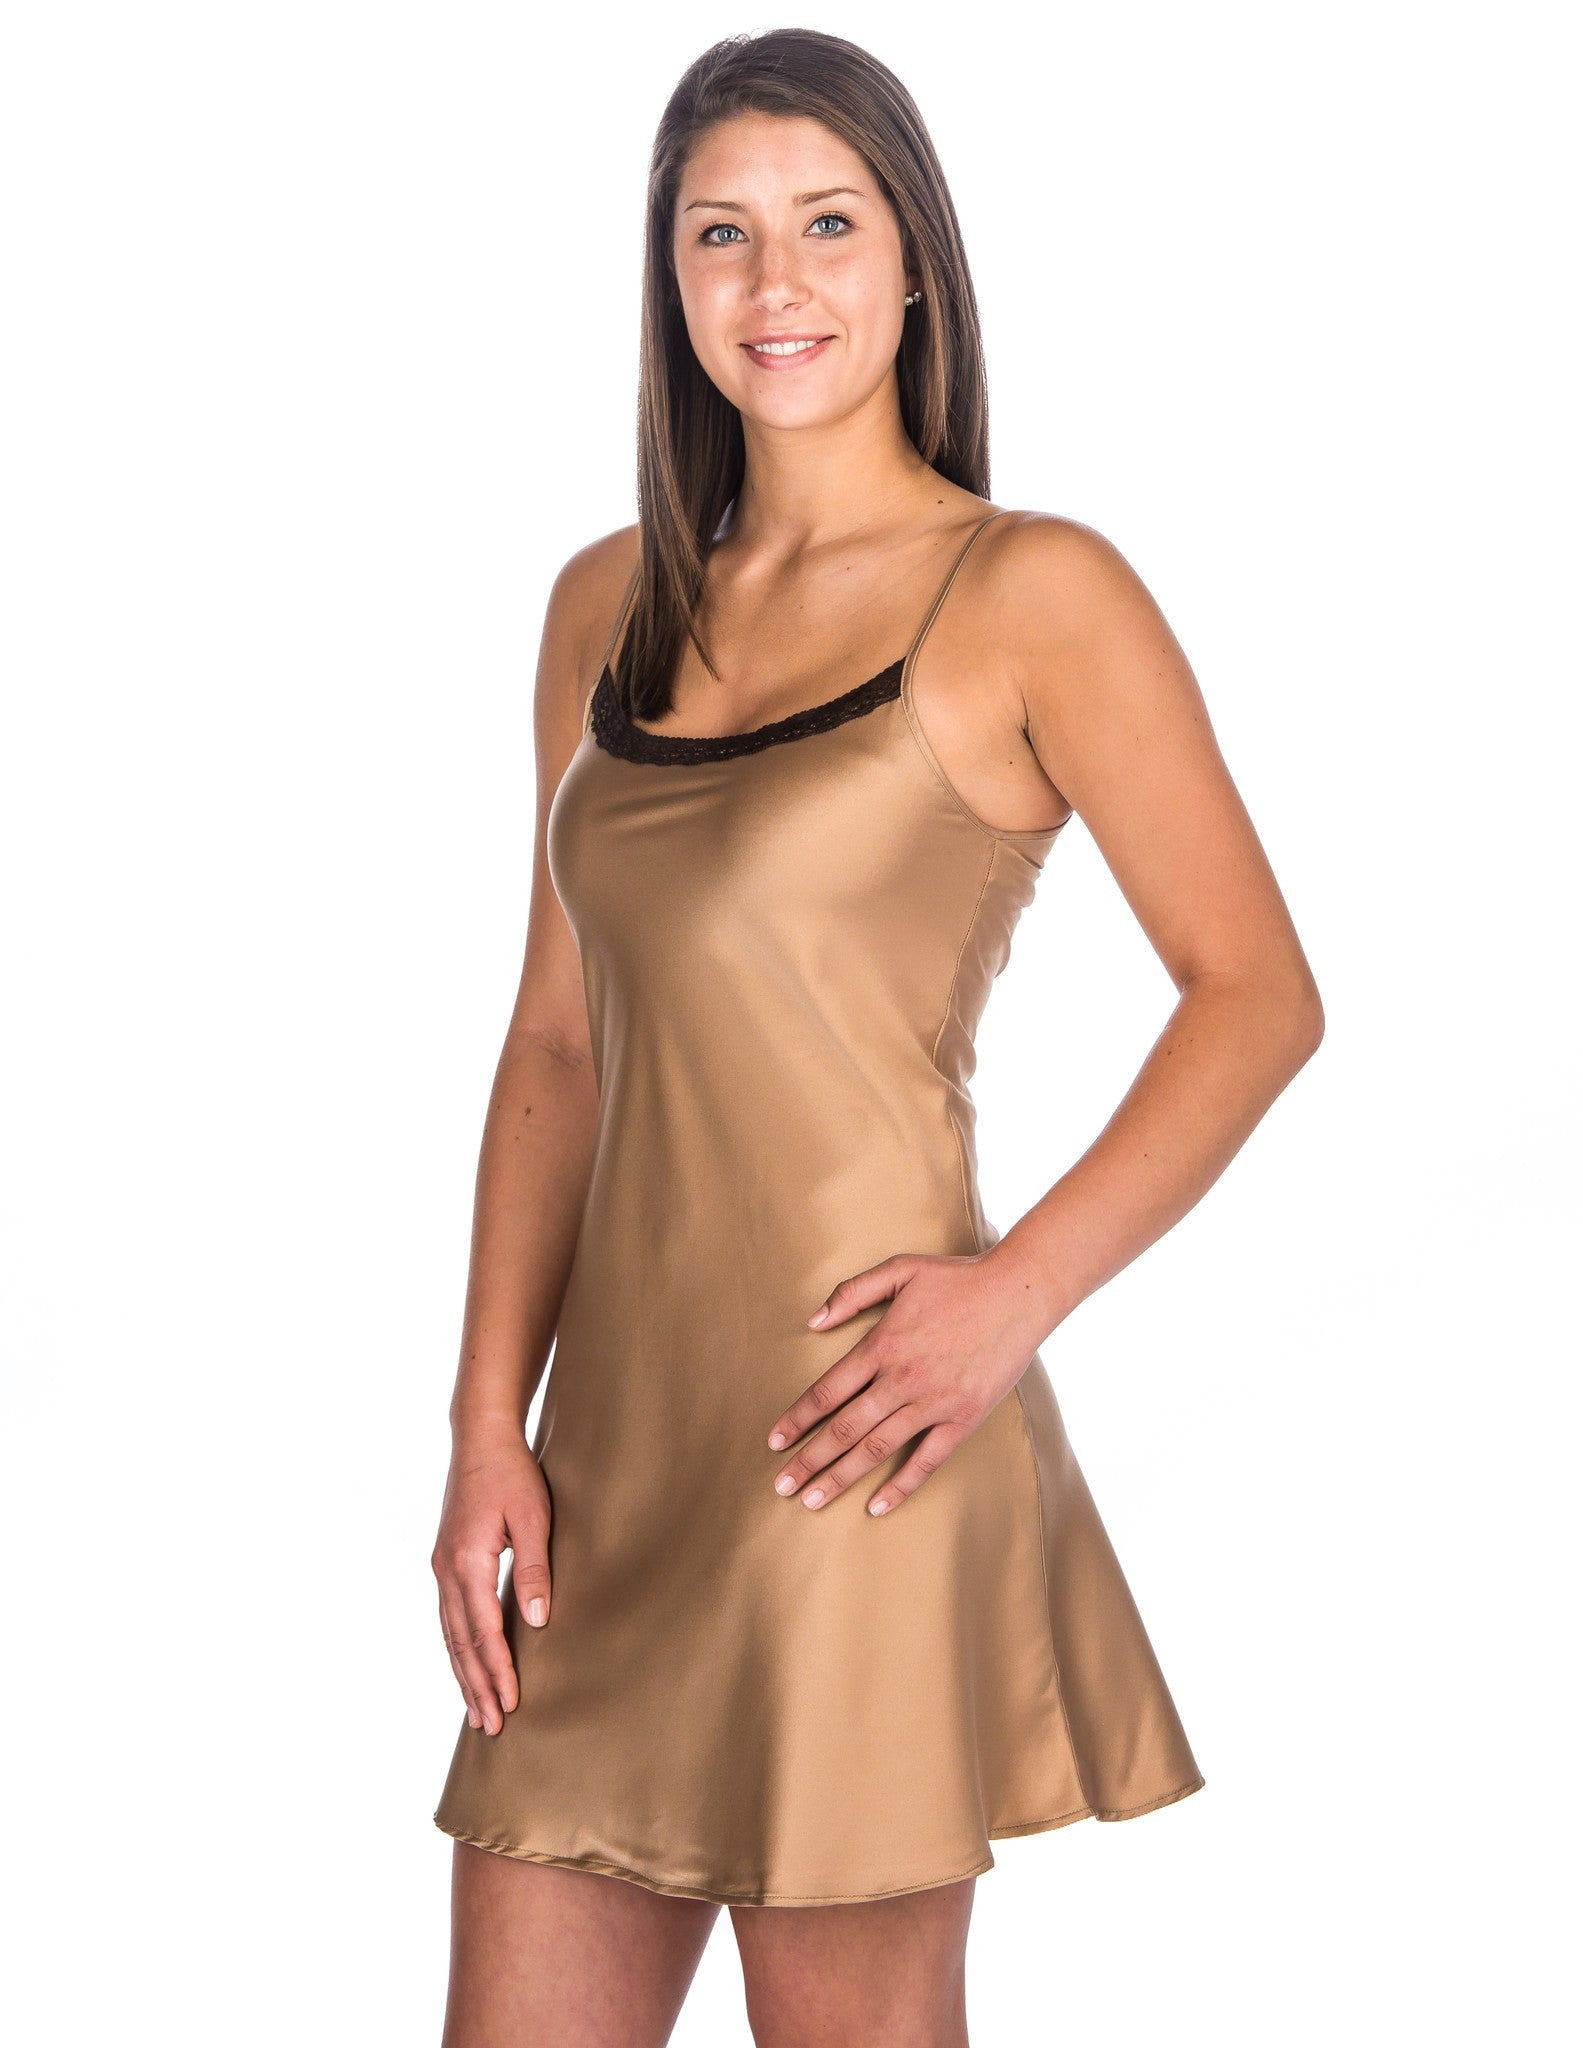 d612cd128ab Women s Premium Satin Chemise Nightgown with Lace Accent ...